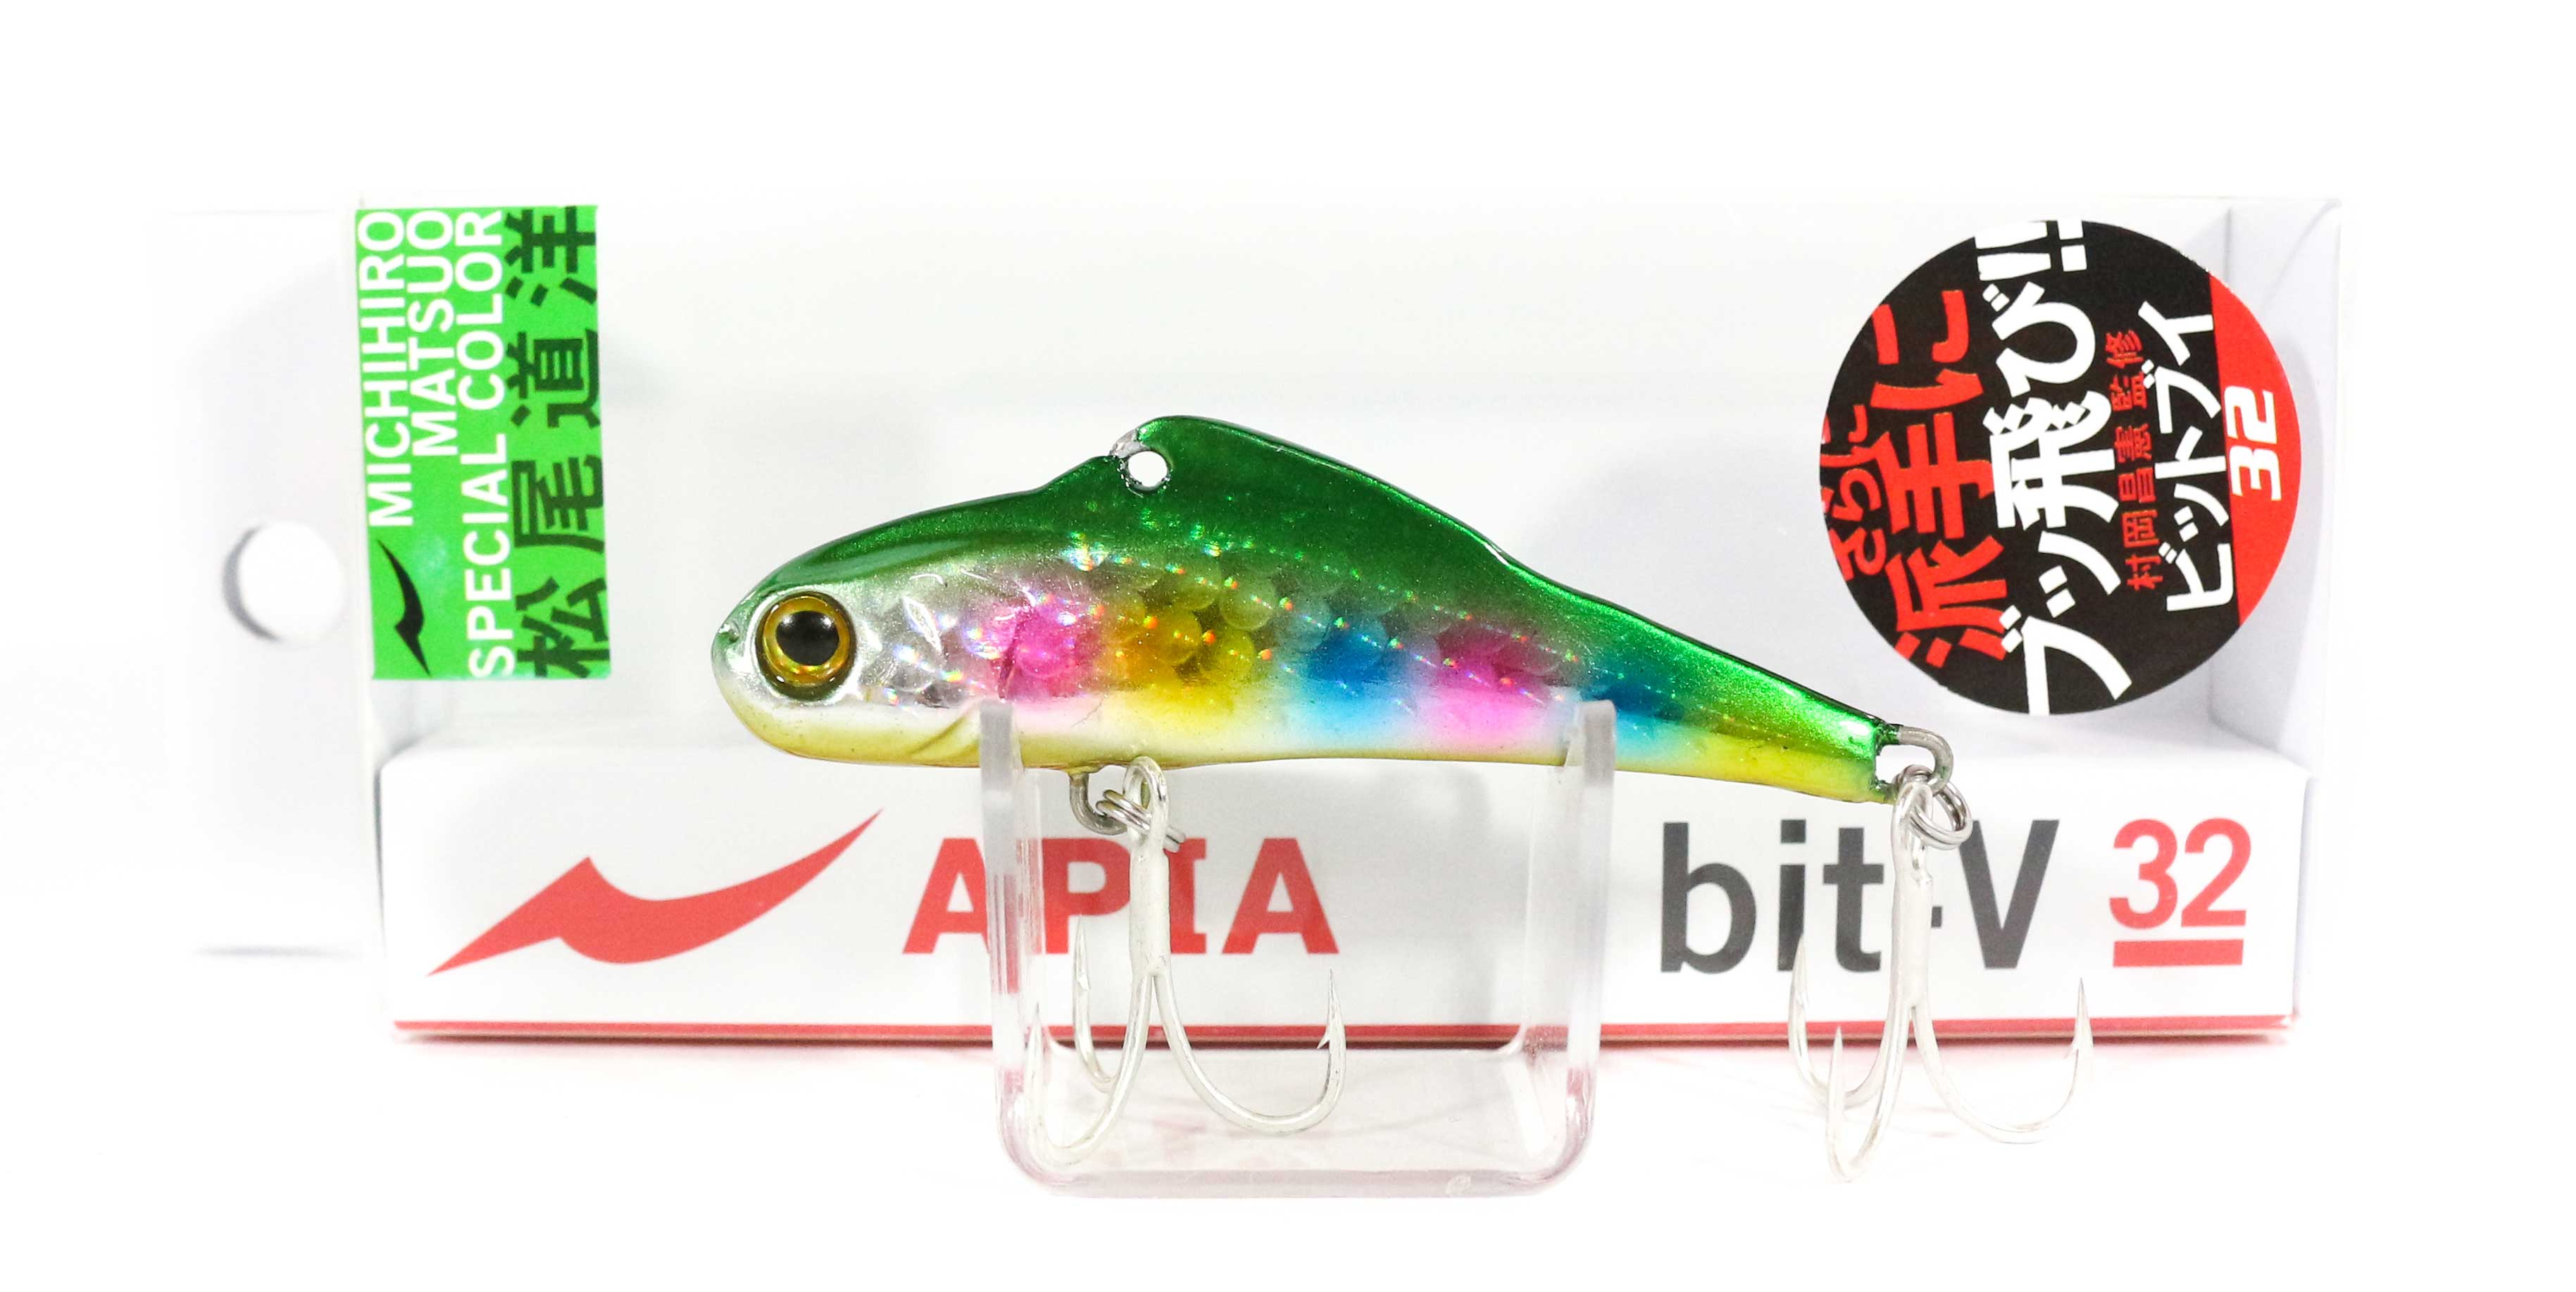 Sale Apia Bit-V Metal Vibration 32 grams Sinking Lure 013 (9921)